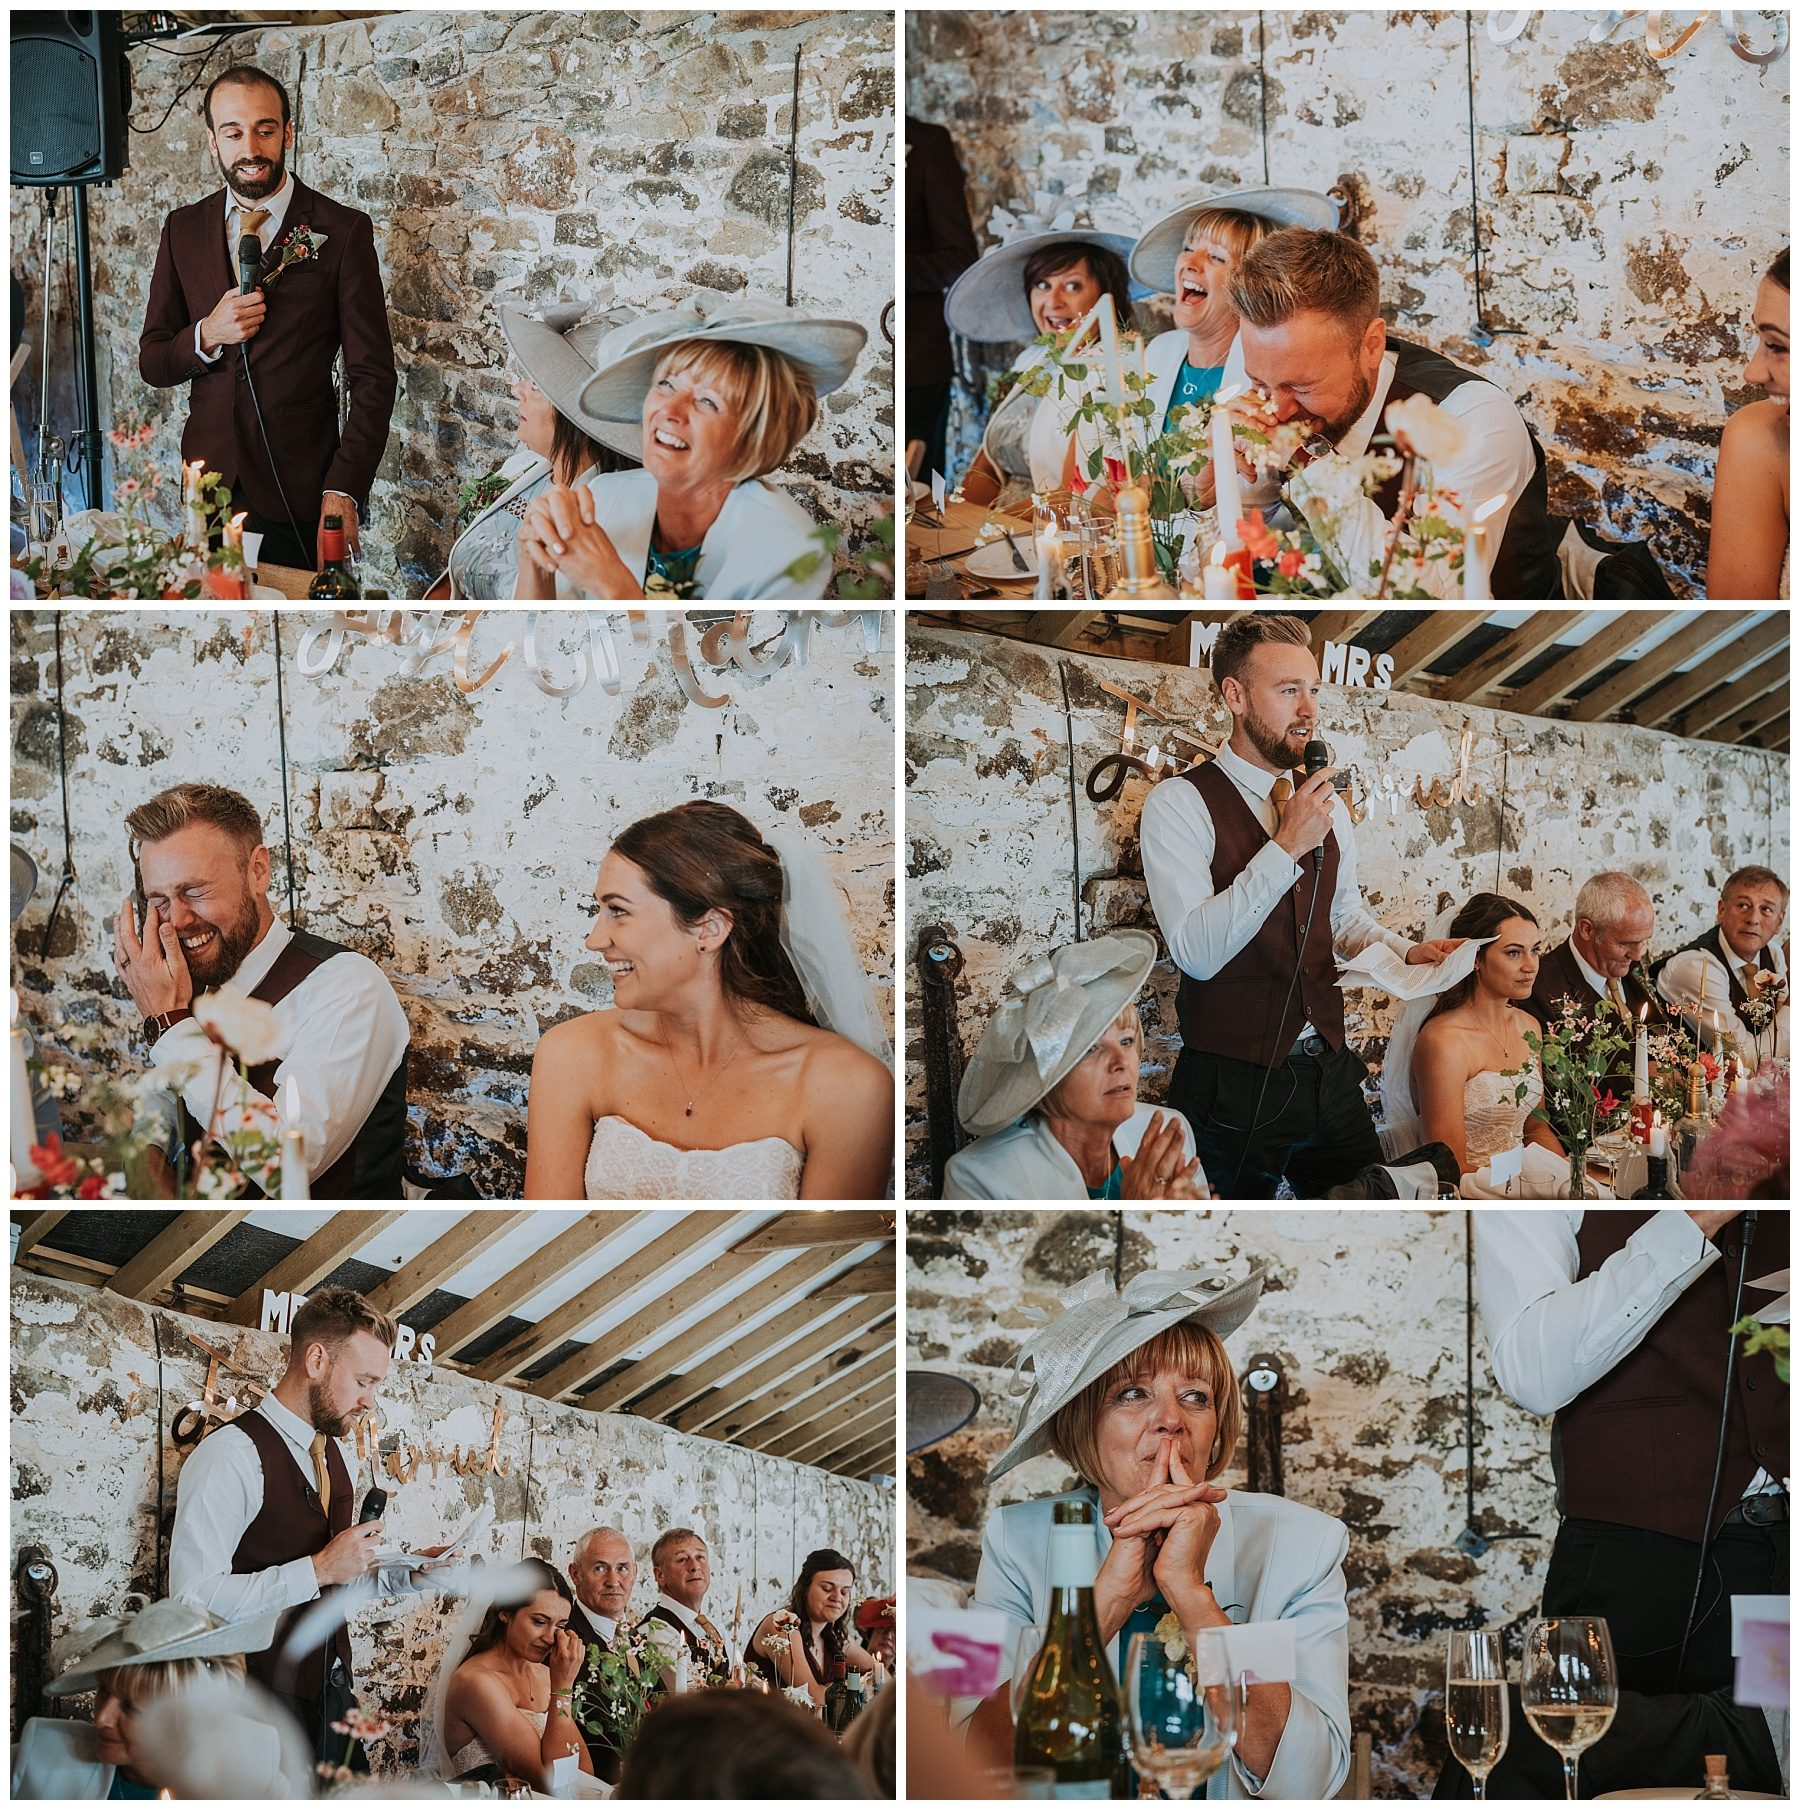 Pengenna manor cornwall wedding speech